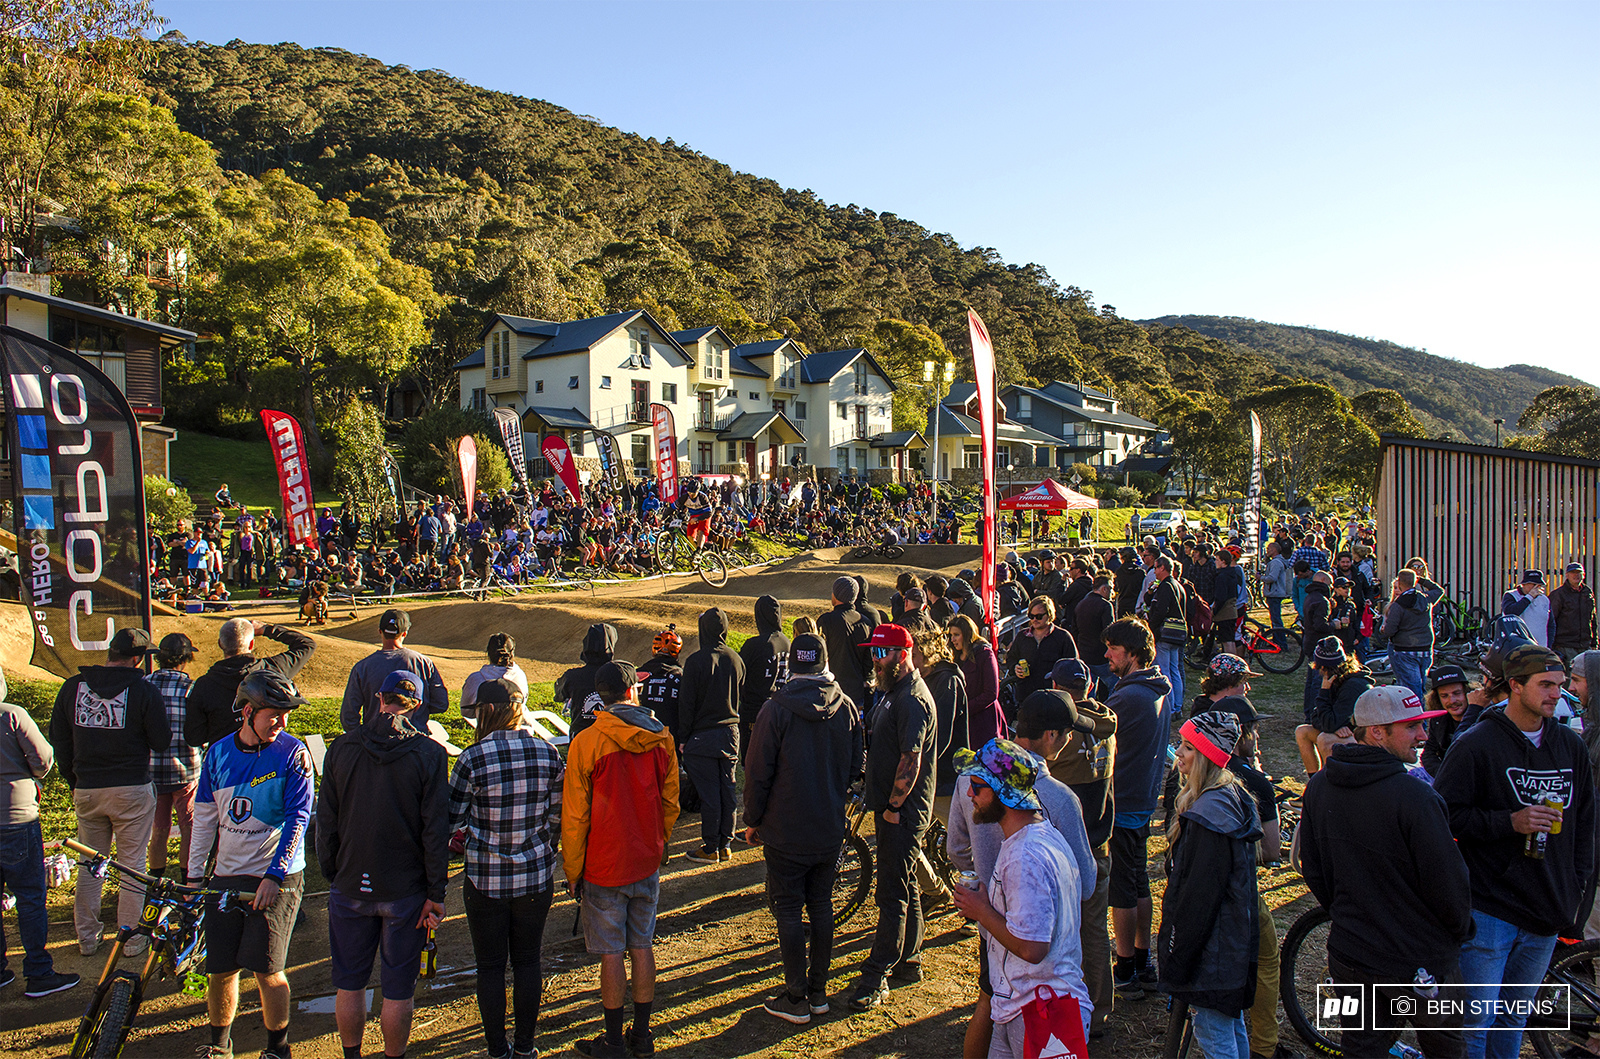 Crowds gather for the Rock Shox Pump Track Challenge